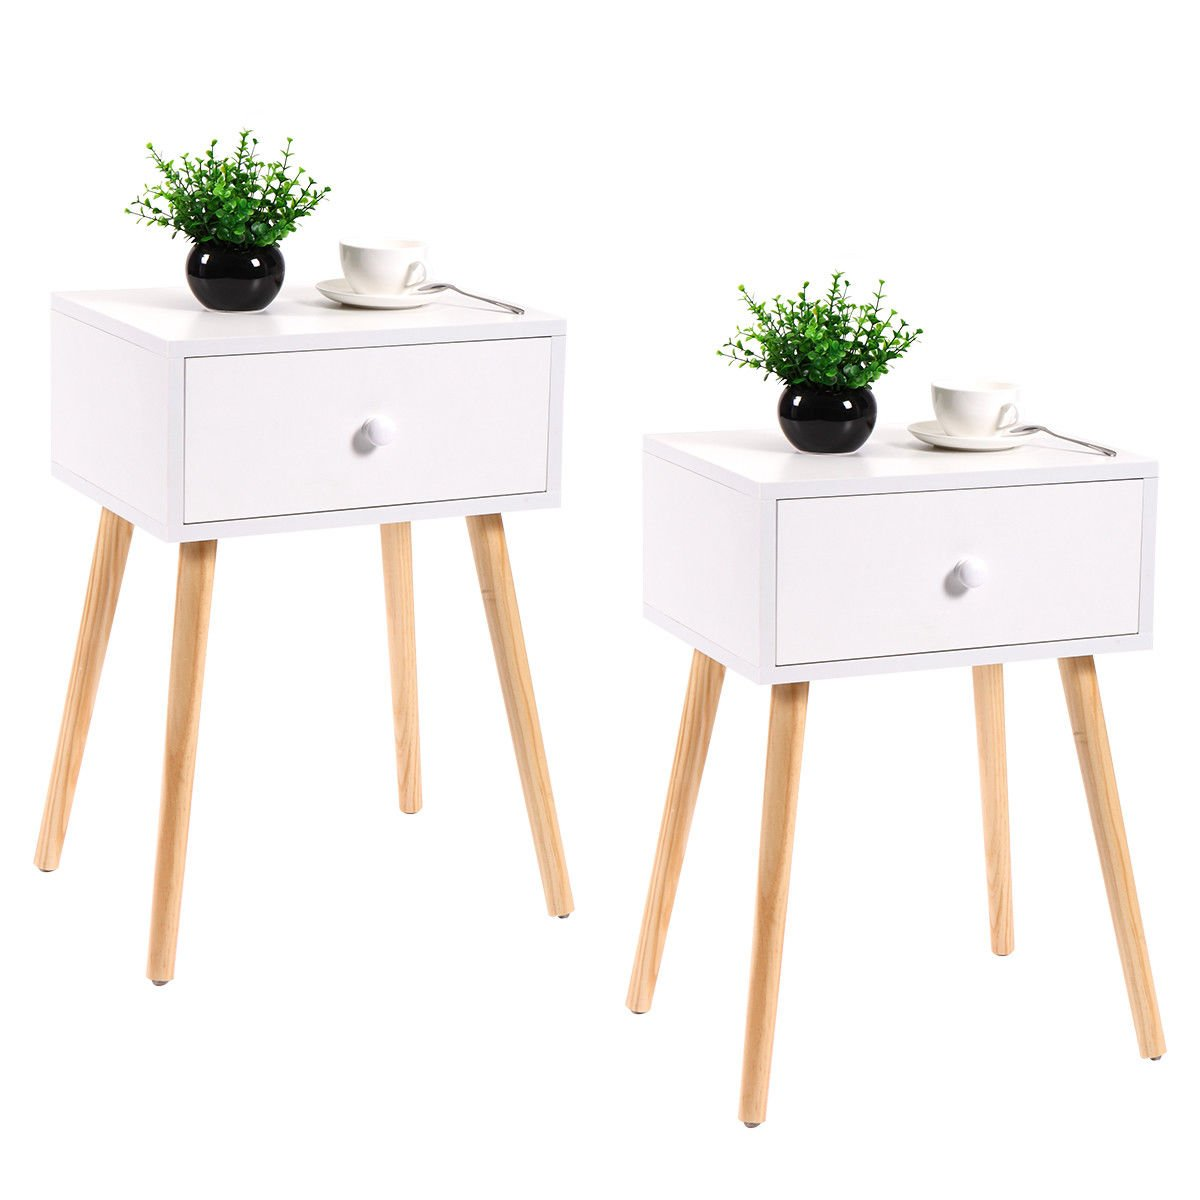 4723761b2e2 Amazon.com  LAZYMOON 2-Pack White Side End Table Nightstand Mid-Century  Accent Wood Side Table  Kitchen   Dining